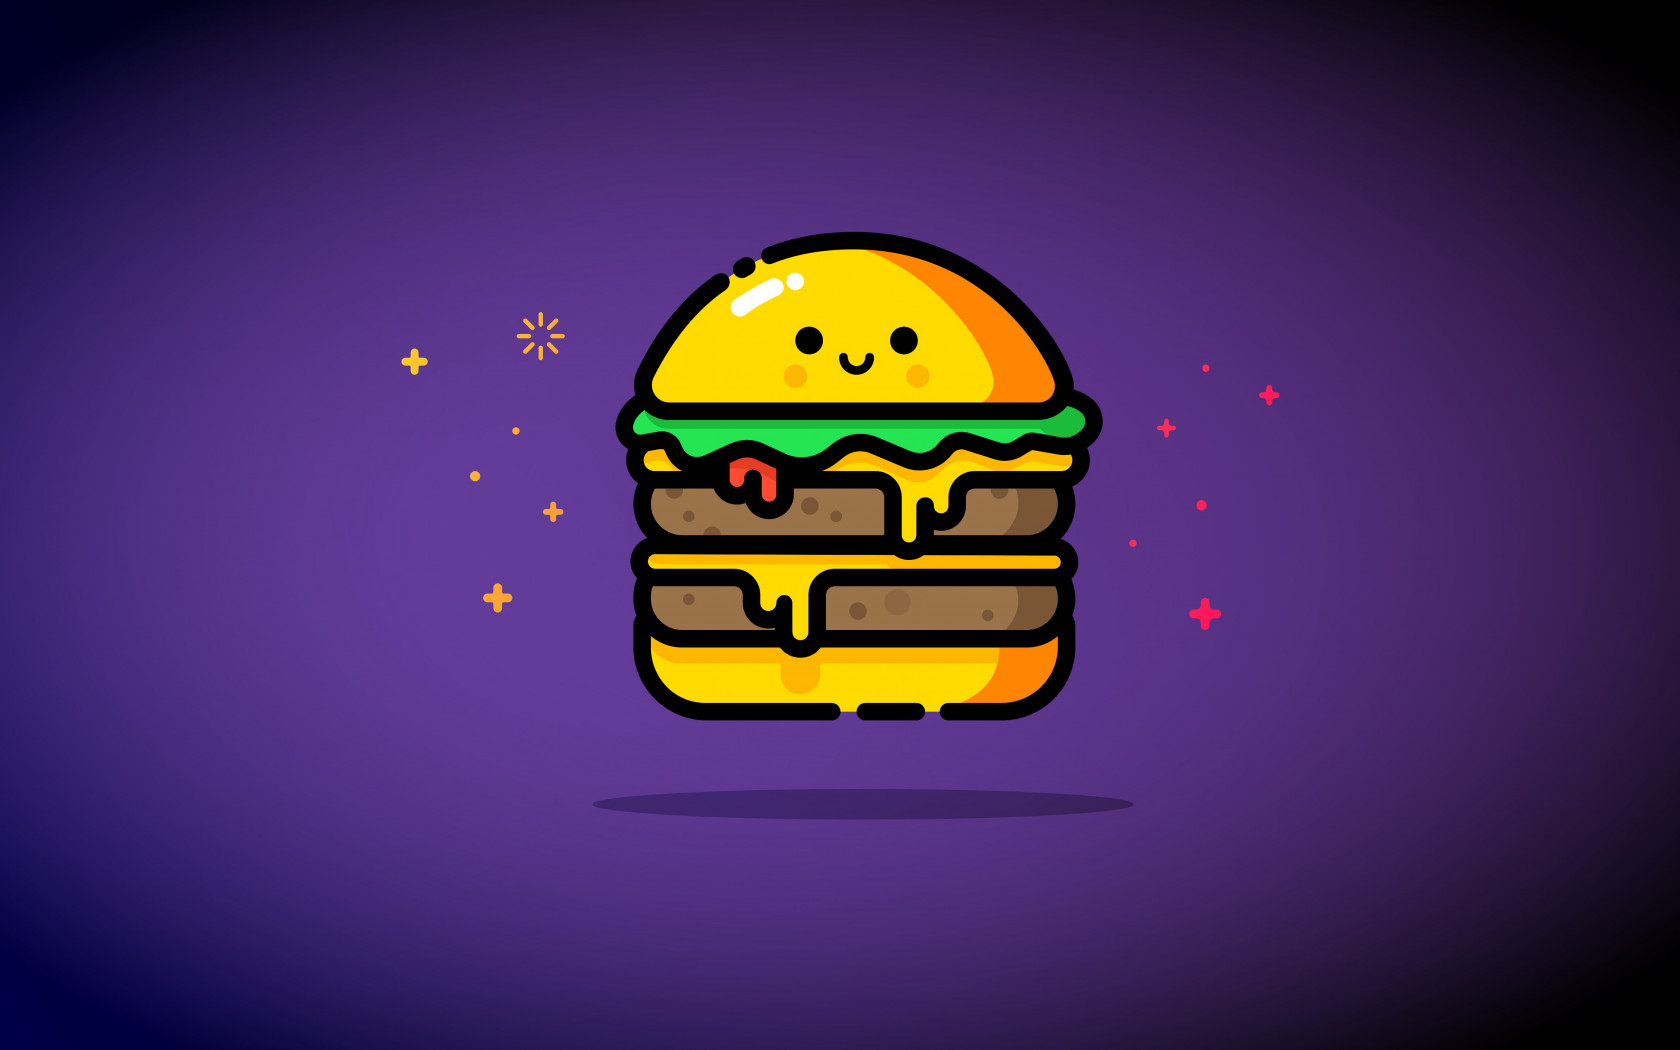 Double cheese wallpaper 1680x1050